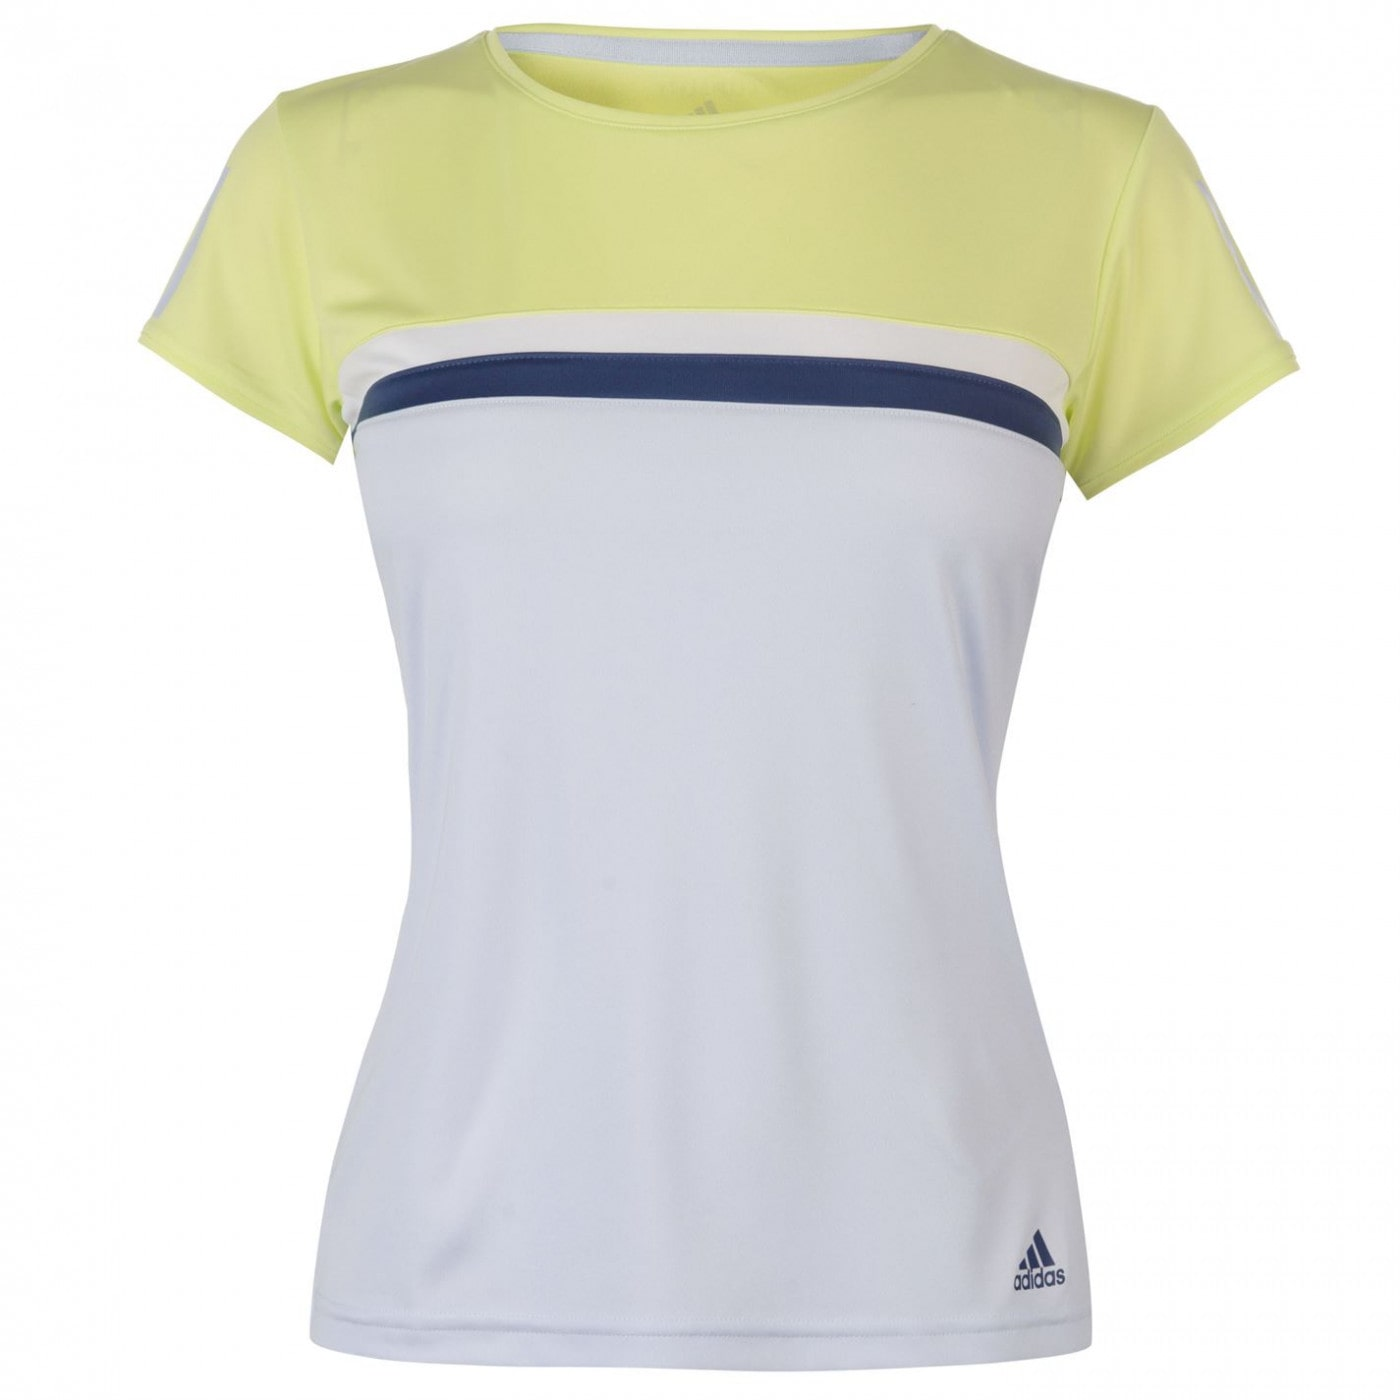 Adidas Club T Shirt Ladies